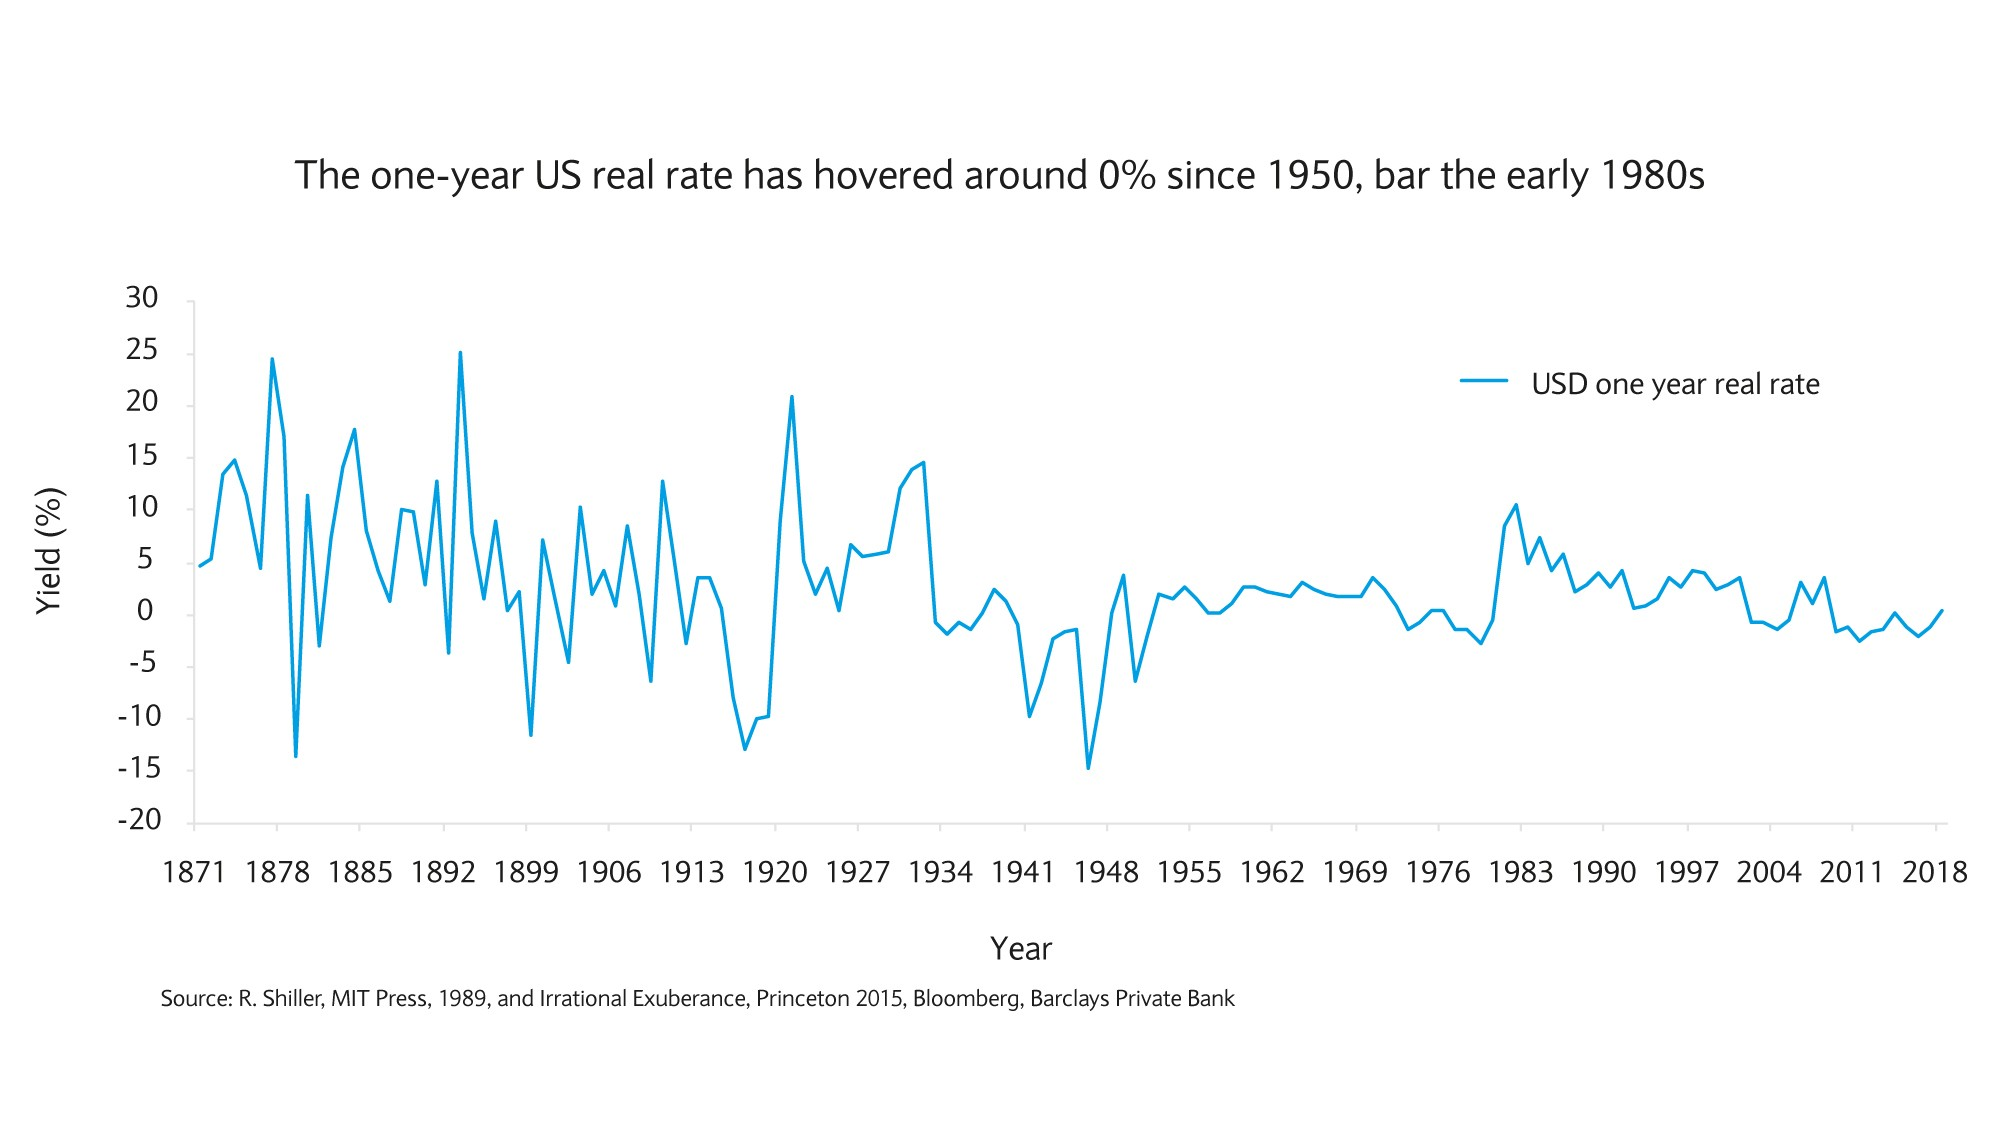 The one year US real rate has hovered around 0% since 1950